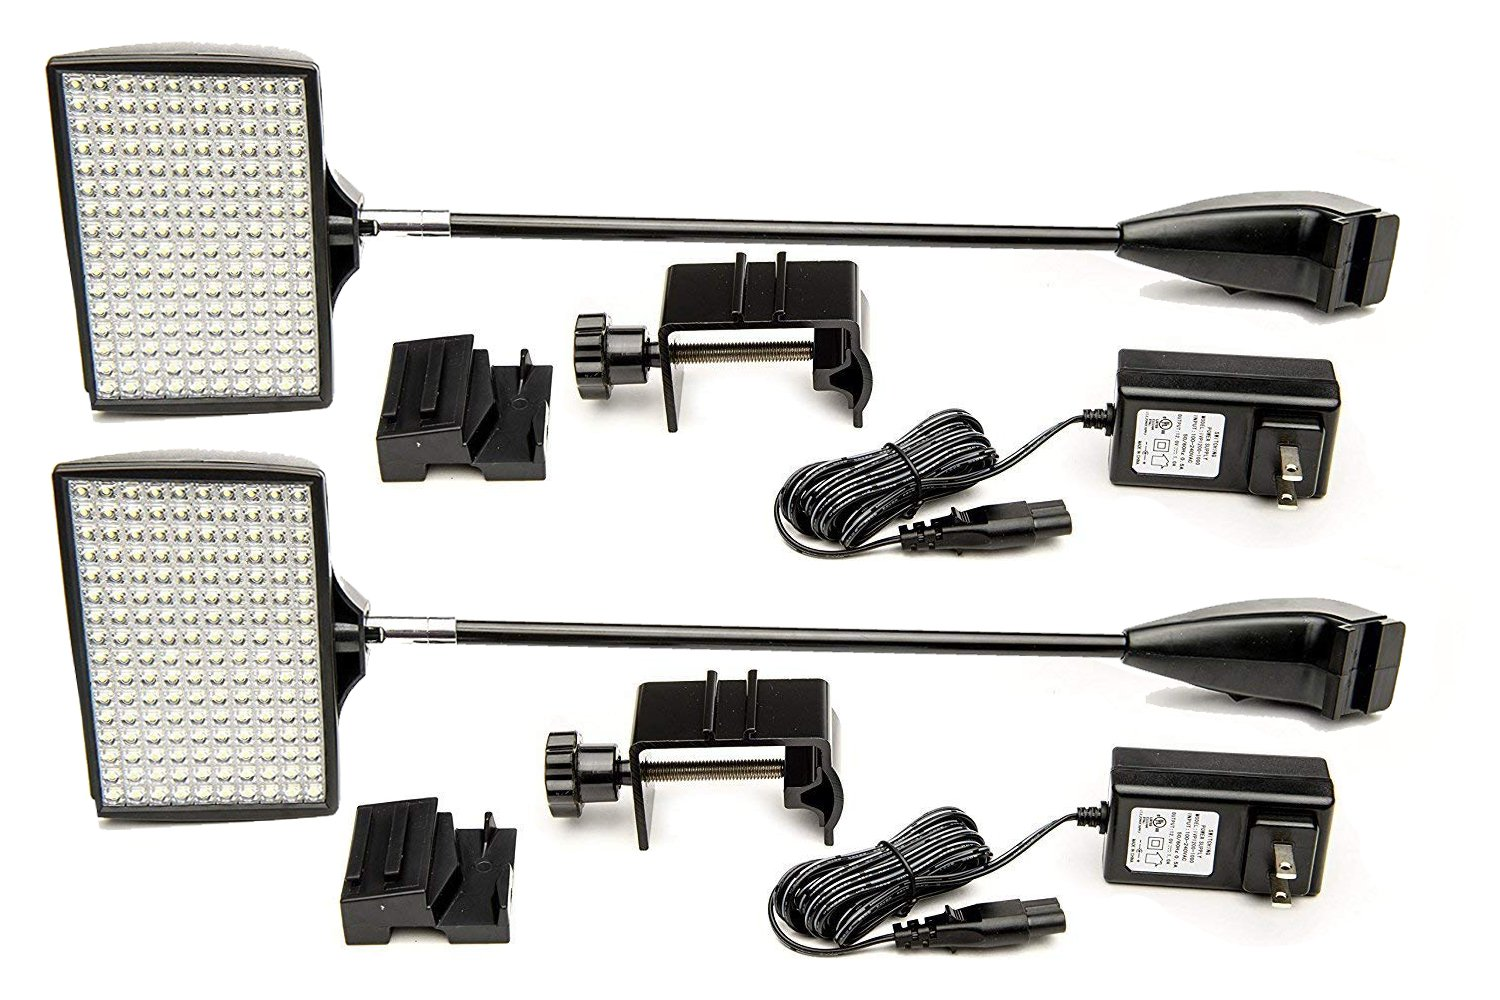 Trade Show Lights, HitLights 2 Packs LED Display and Exhibit 12V DC LED Arm Lights, Pop-Up Halogen Replacement, Includes UL Power Supply and Mounting Hardware (C-Clamp-Black)